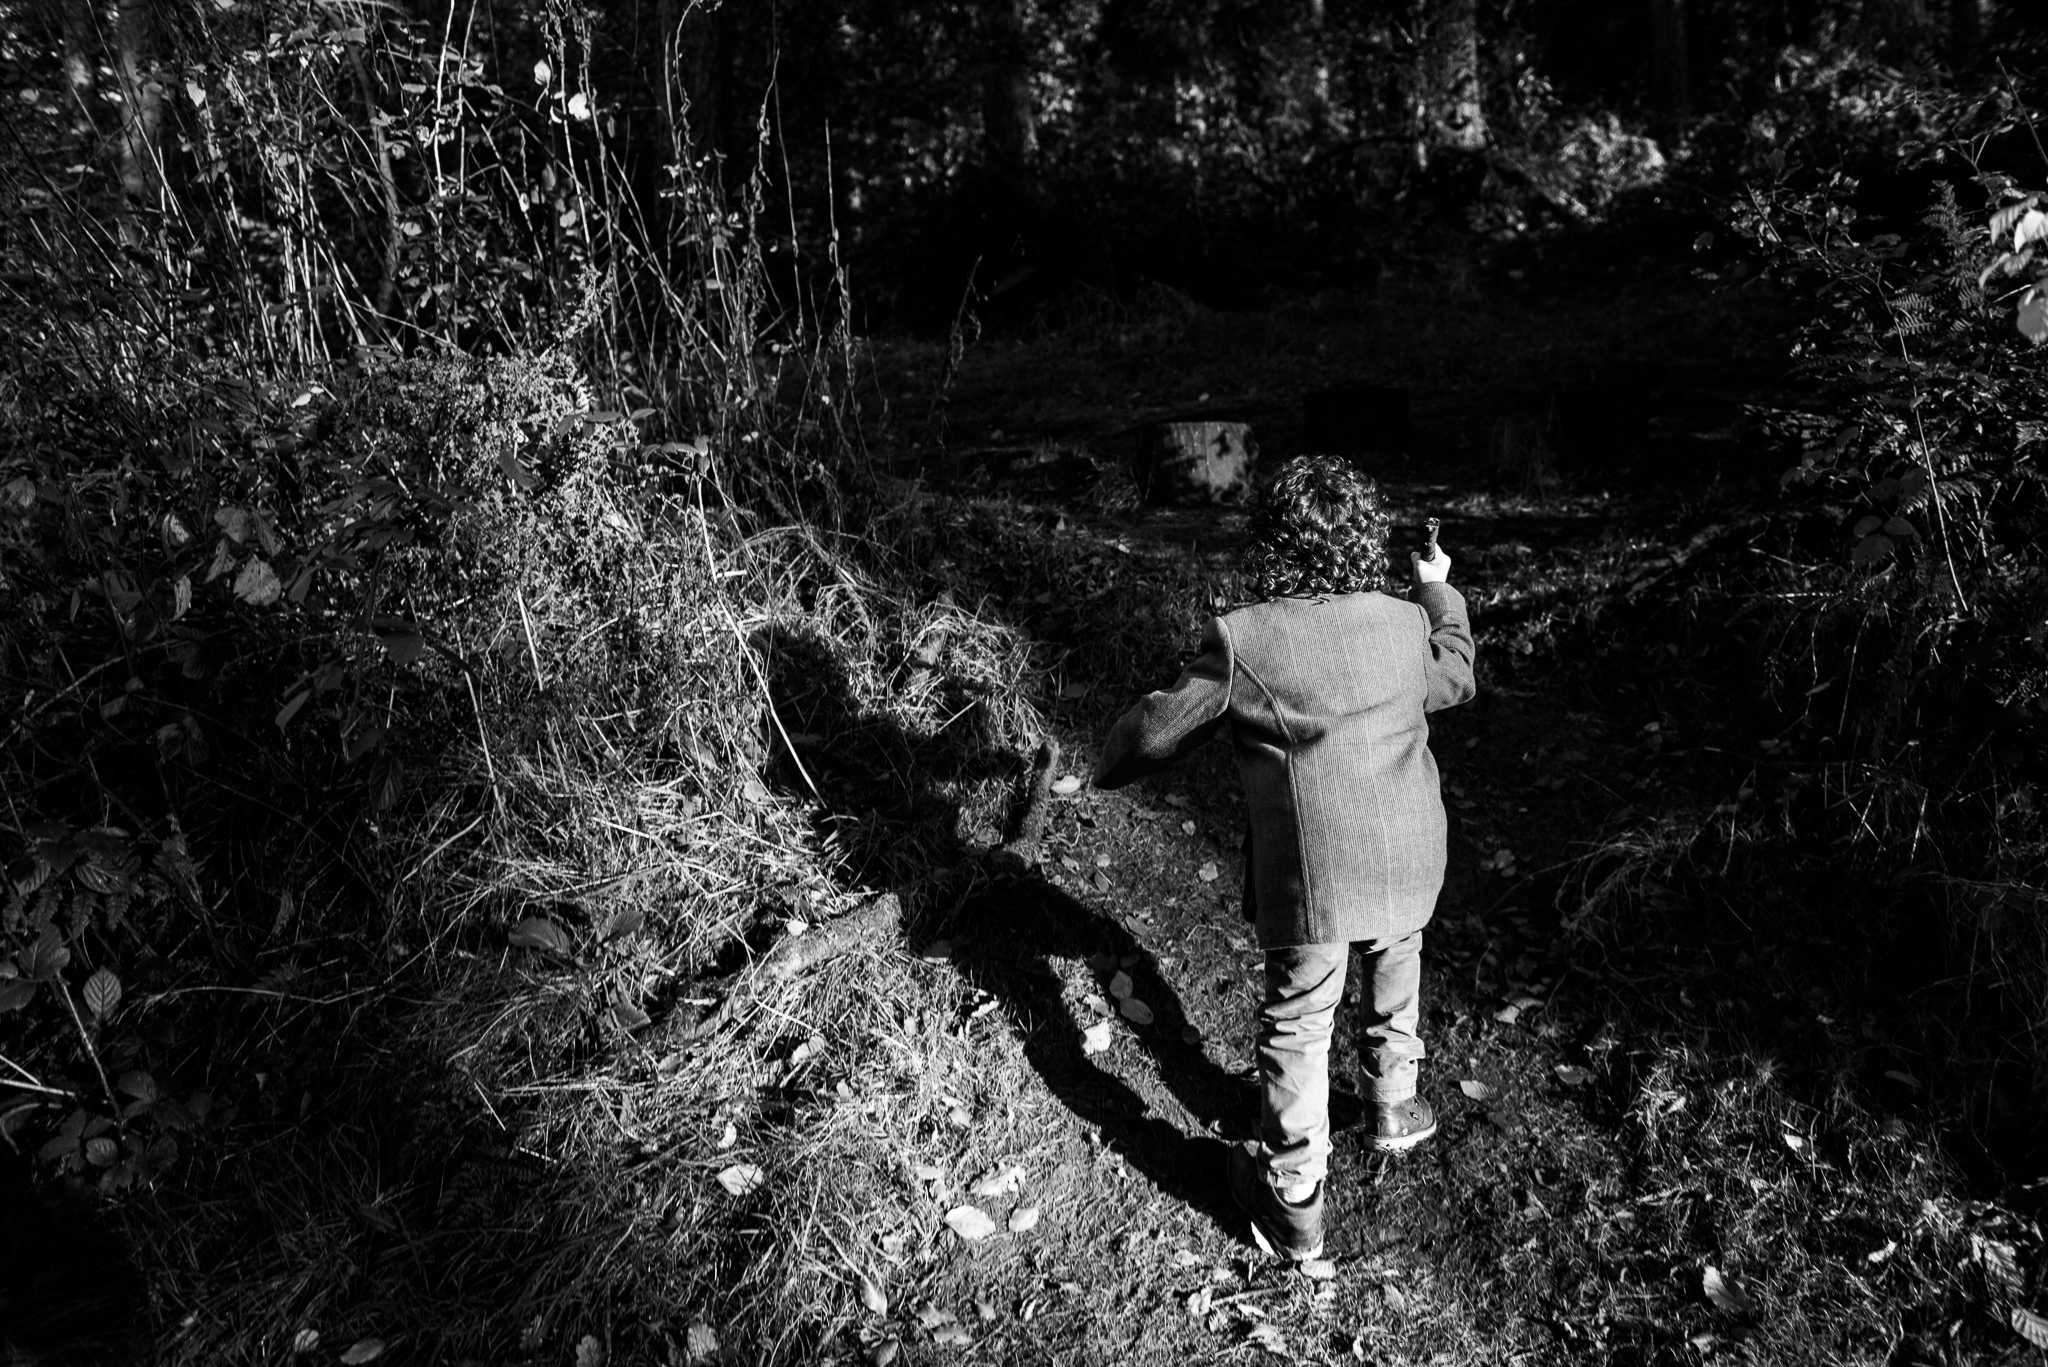 Autumn Documentary Lifestyle Family Photography at Clent Hills, Worcestershire Country Park countryside outdoors nature - Jenny Harper-18.jpg